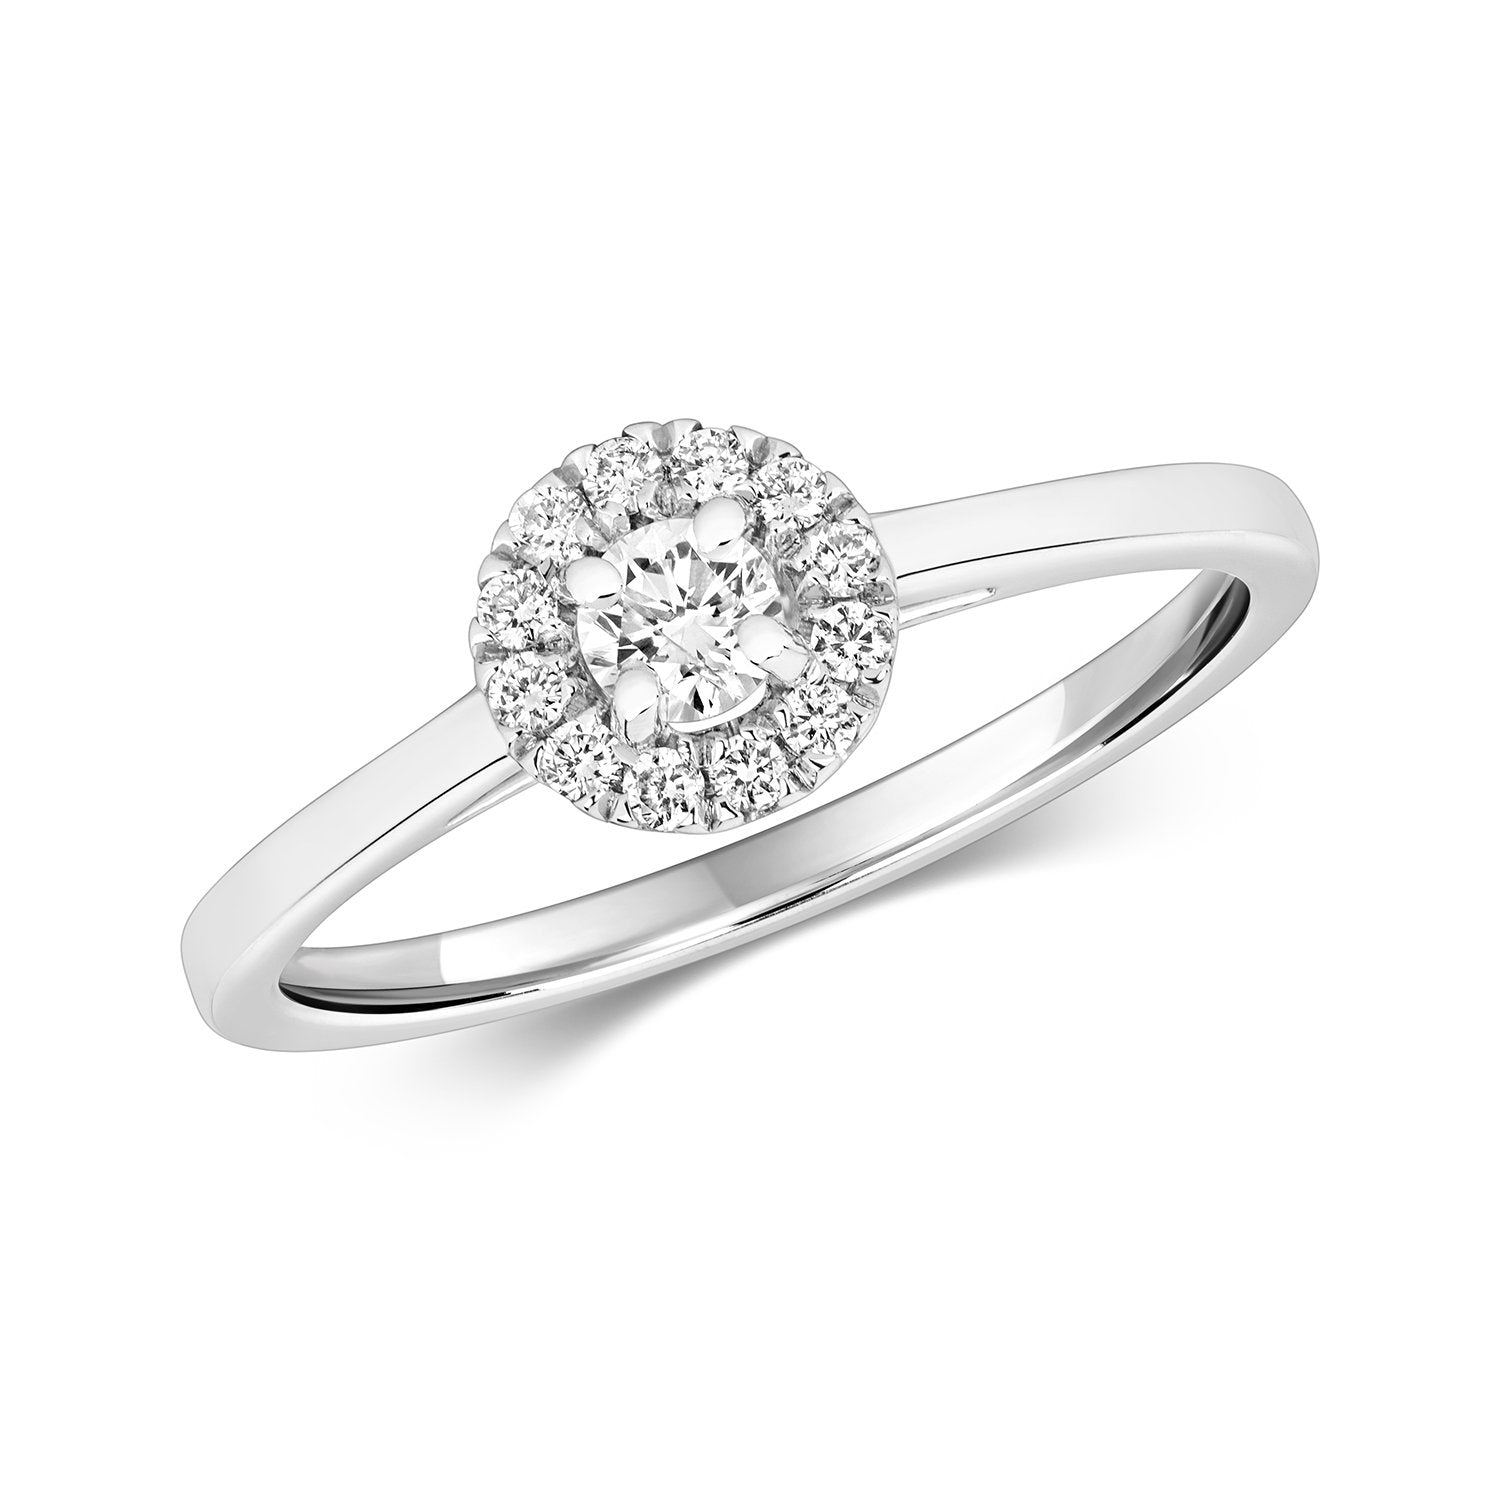 9ct White Gold Diamond Solitaire Halo Ring Jewellery Treasure House Limited L